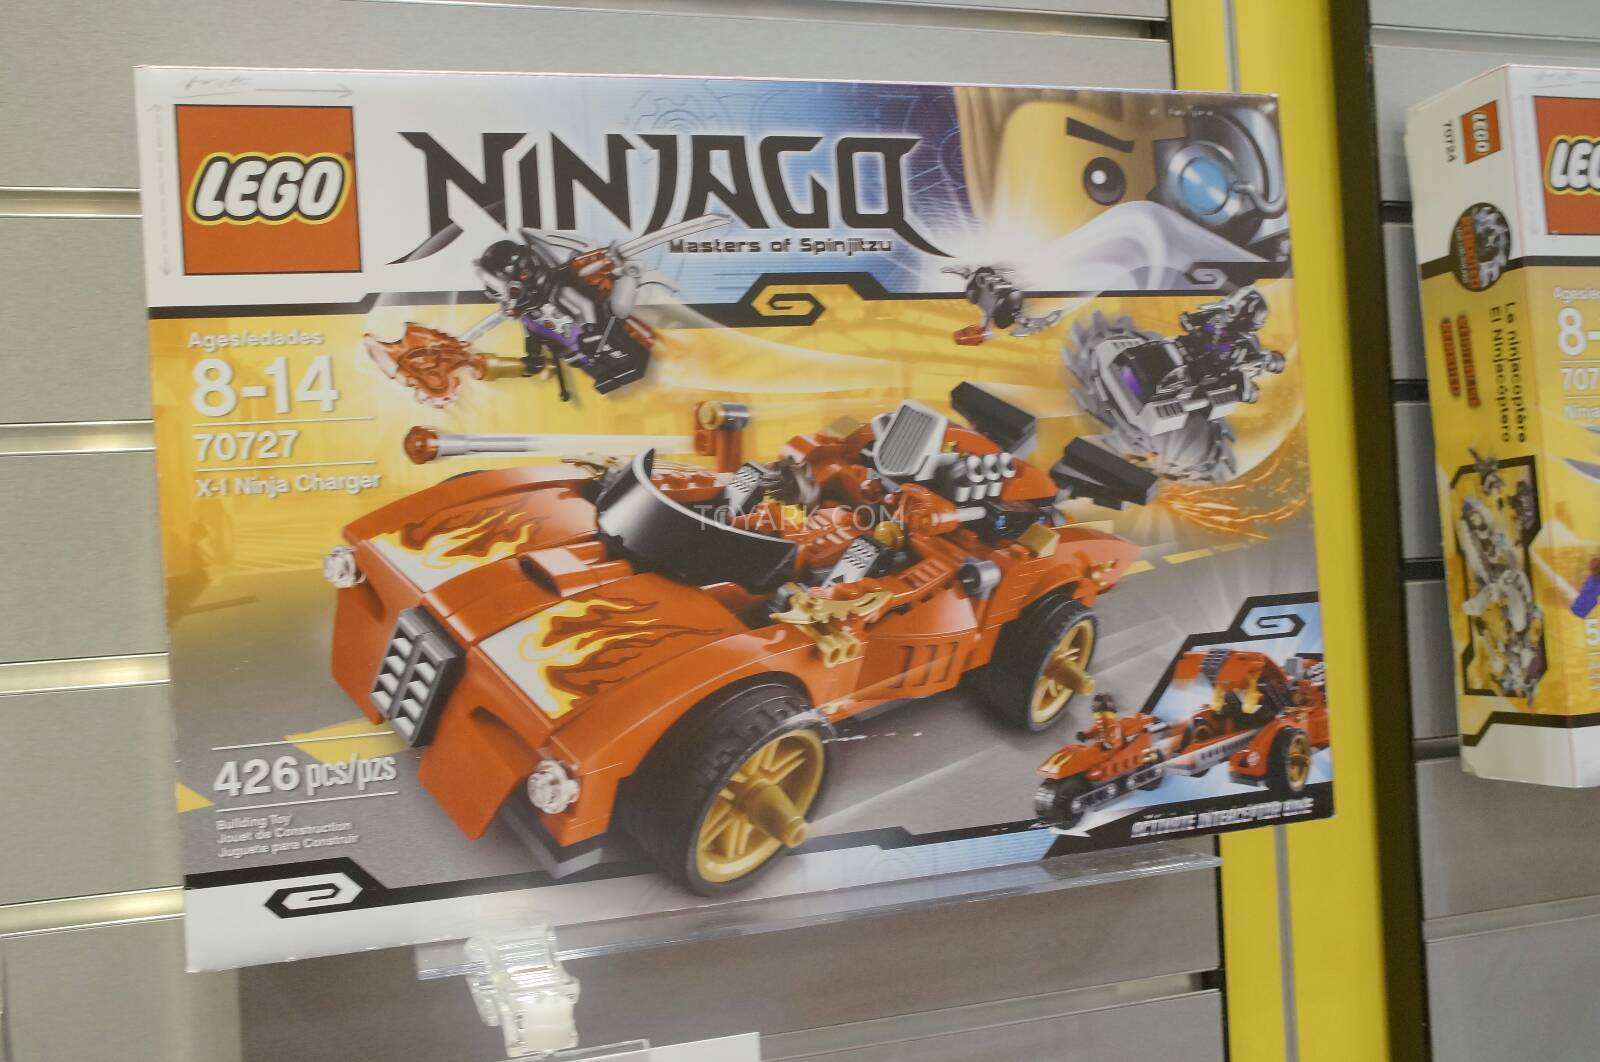 Toy-Fair-2014-LEGO-Ninjago-009.jpg